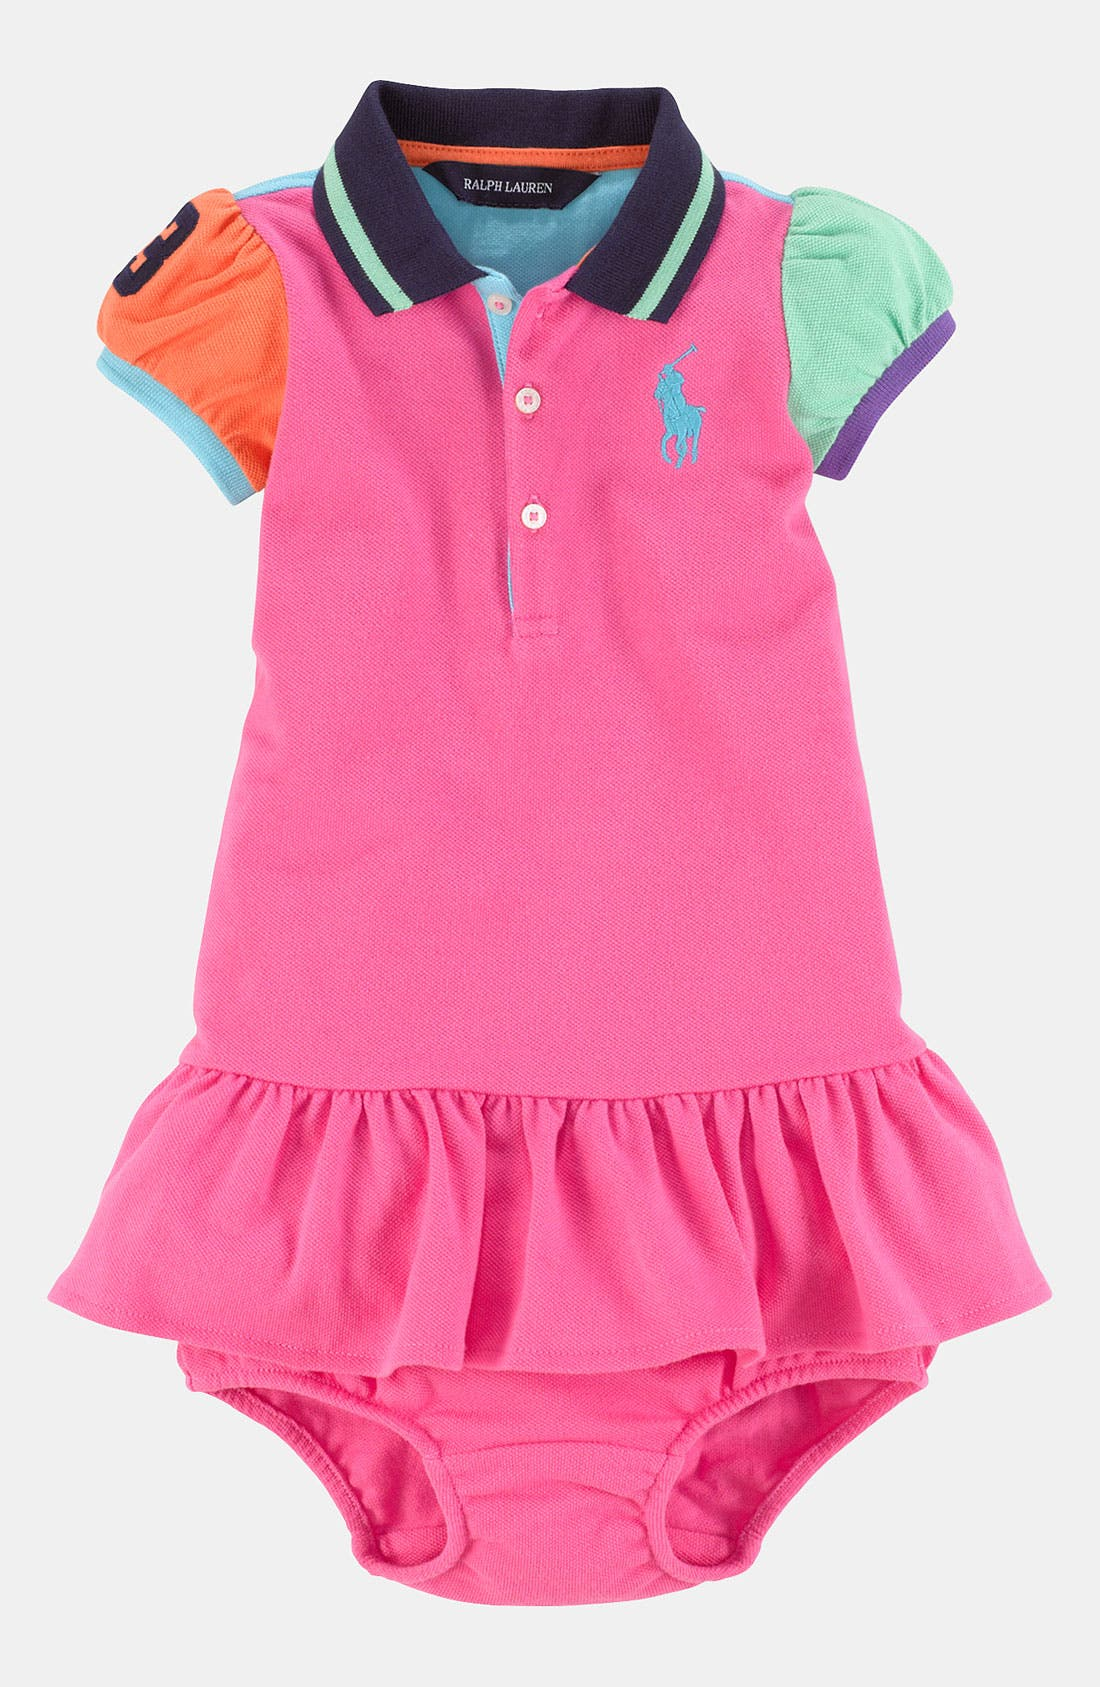 Alternate Image 1 Selected - Ralph Lauren Colorblock Dress & Bloomers (Infant)